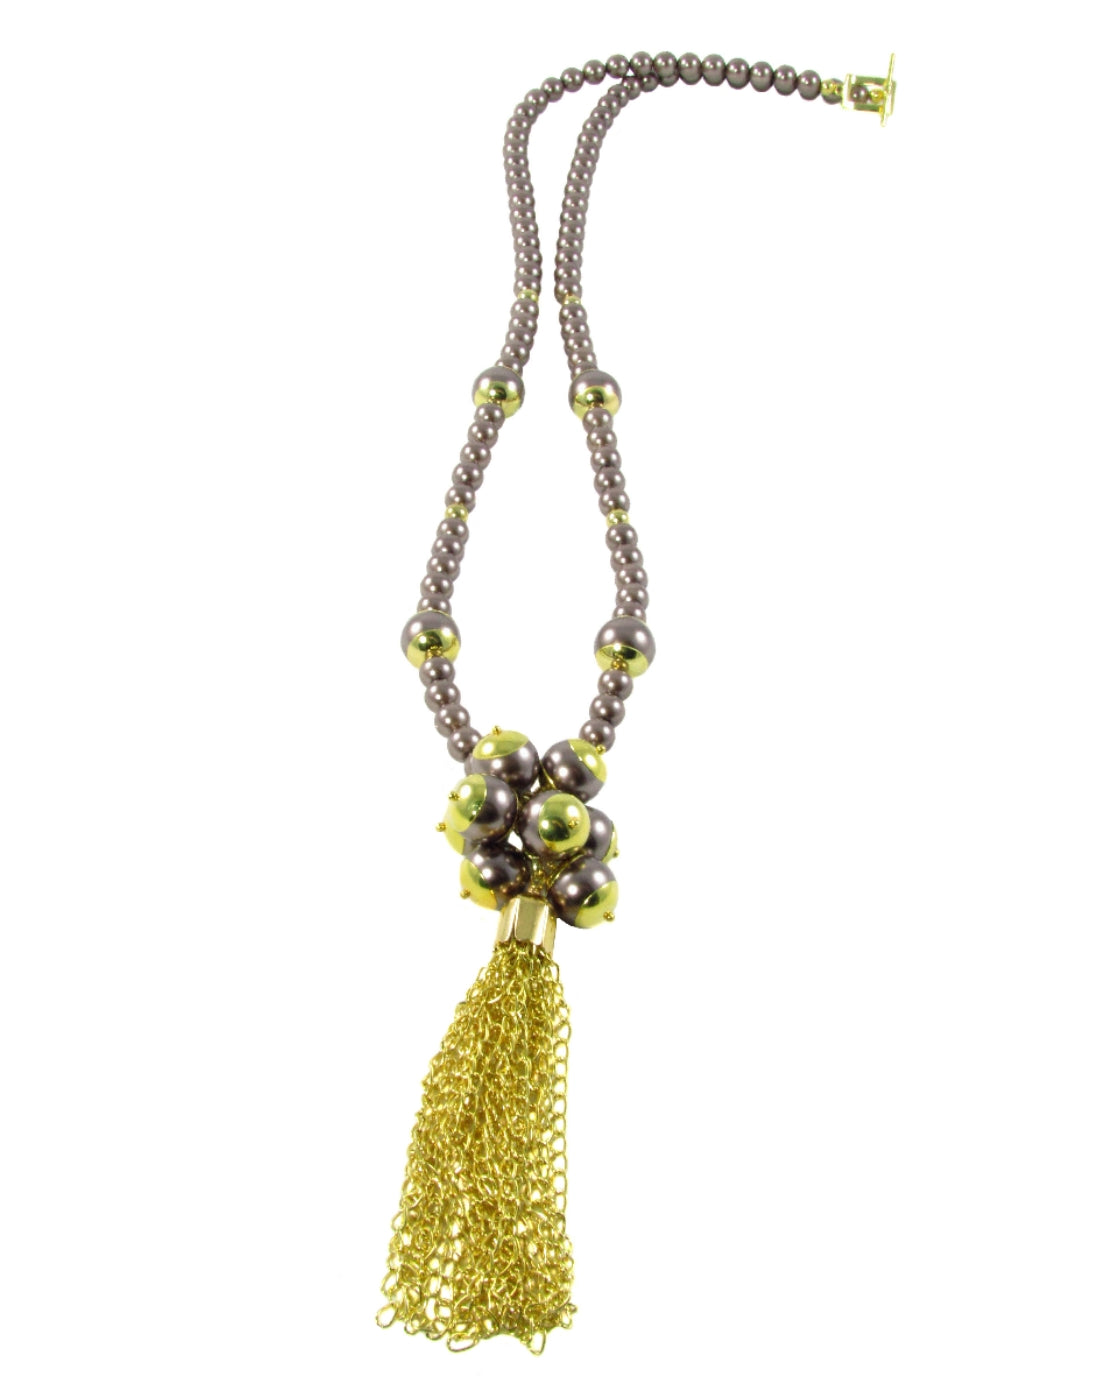 VASIA-Brown pearl long Necklace with Tassel - MARIA MOSS